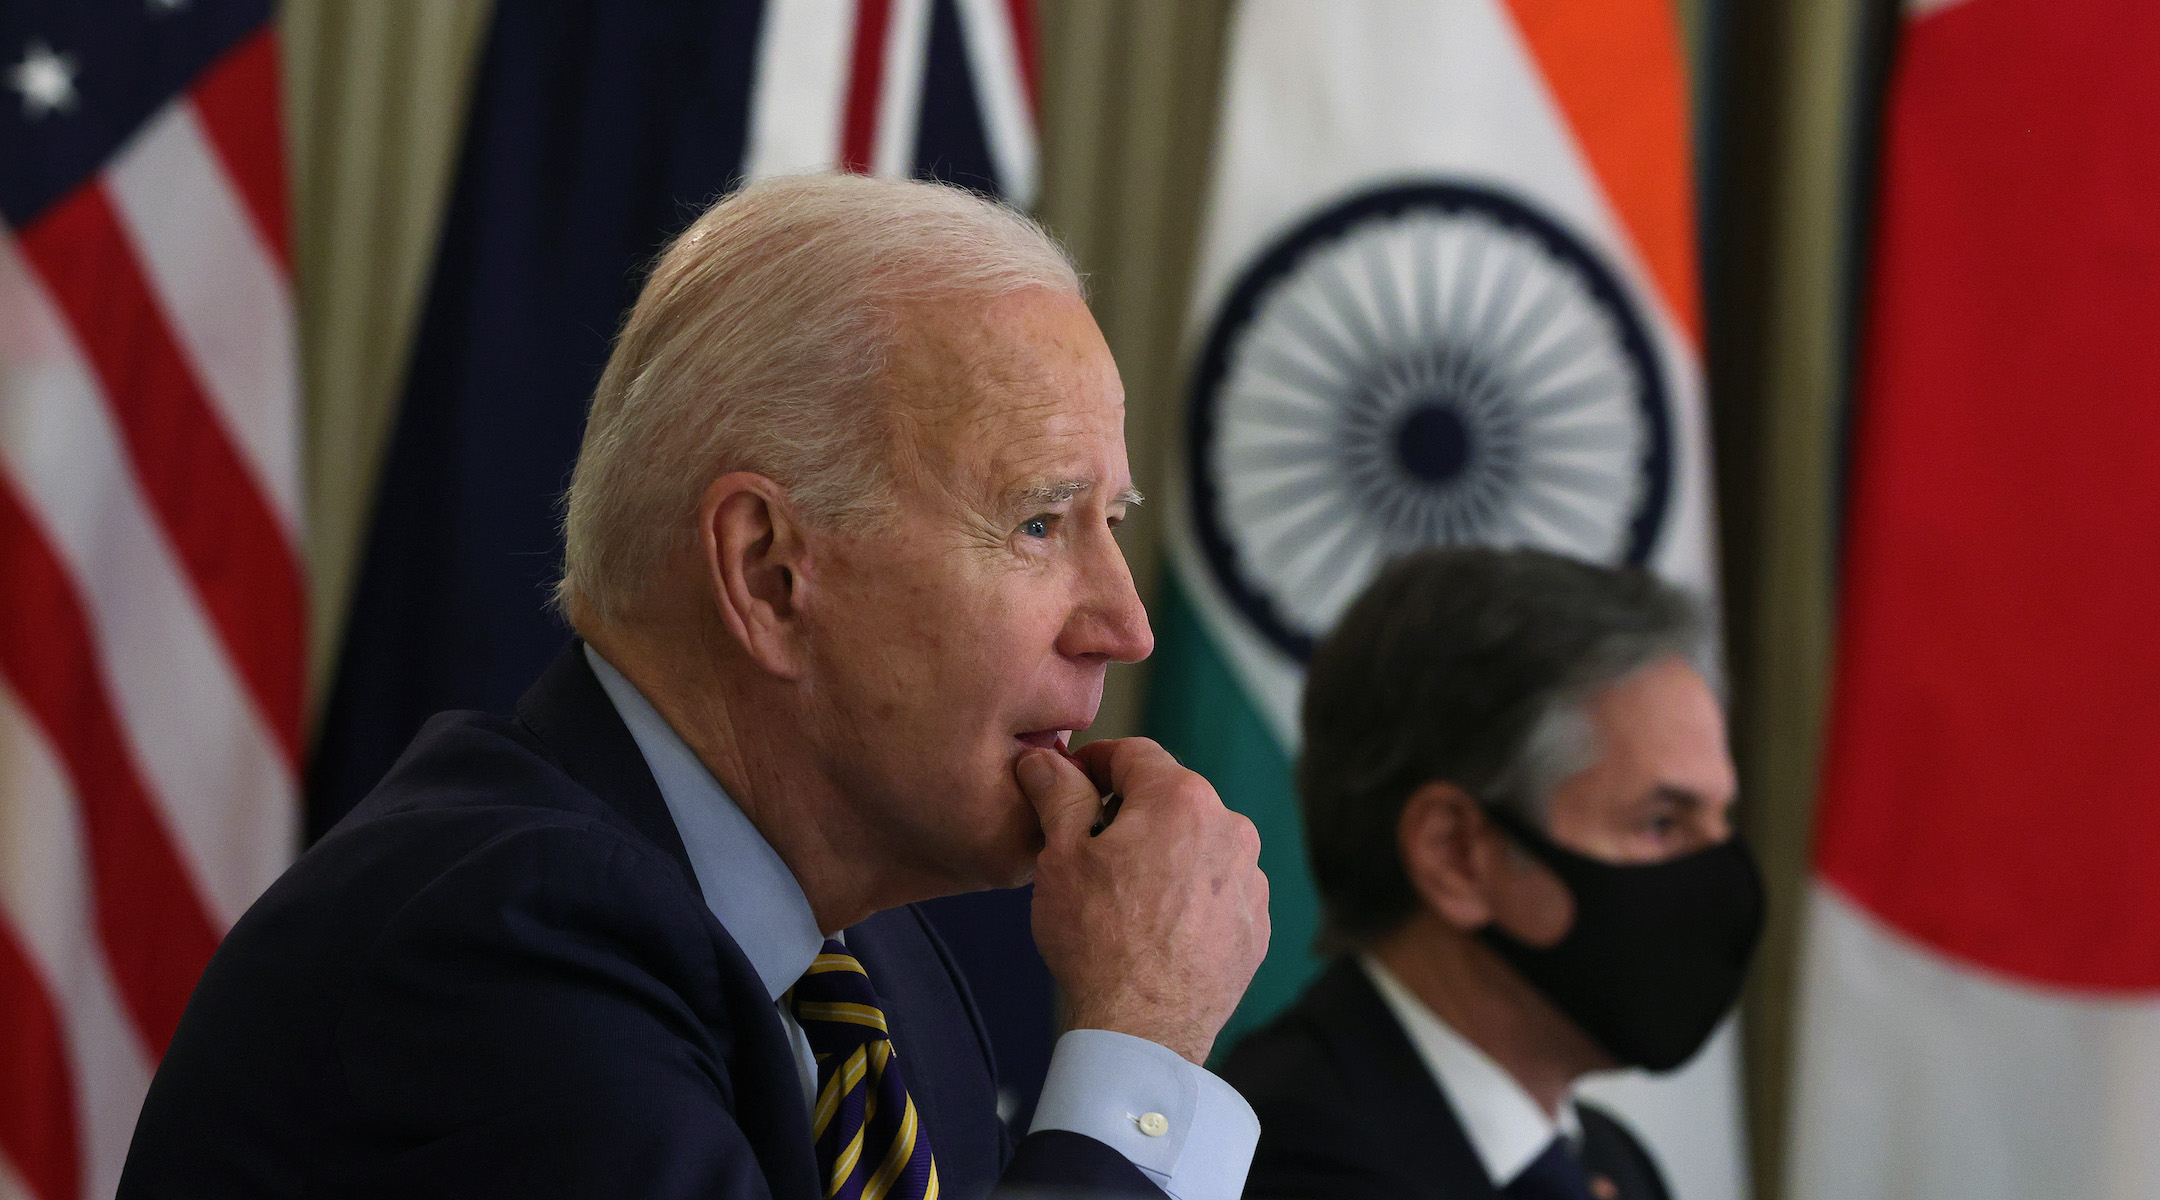 Biden's new slate of aid to Palestinians comes under intense scrutiny